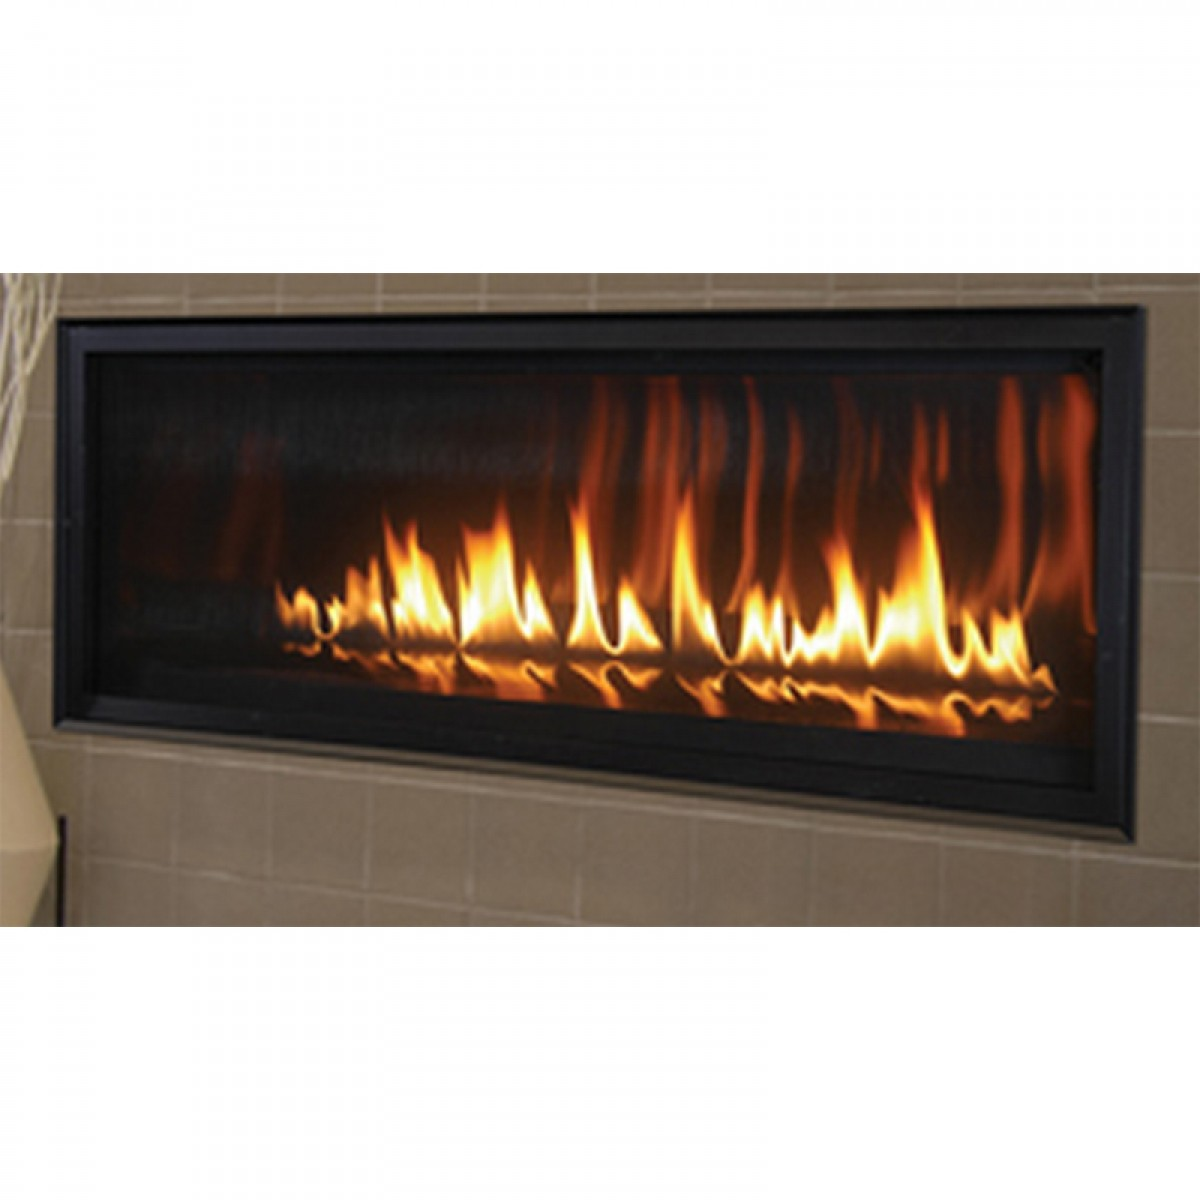 forge remote btu fireplace ventless pin duluth white natural control fuel finish free vent antique with dual gas